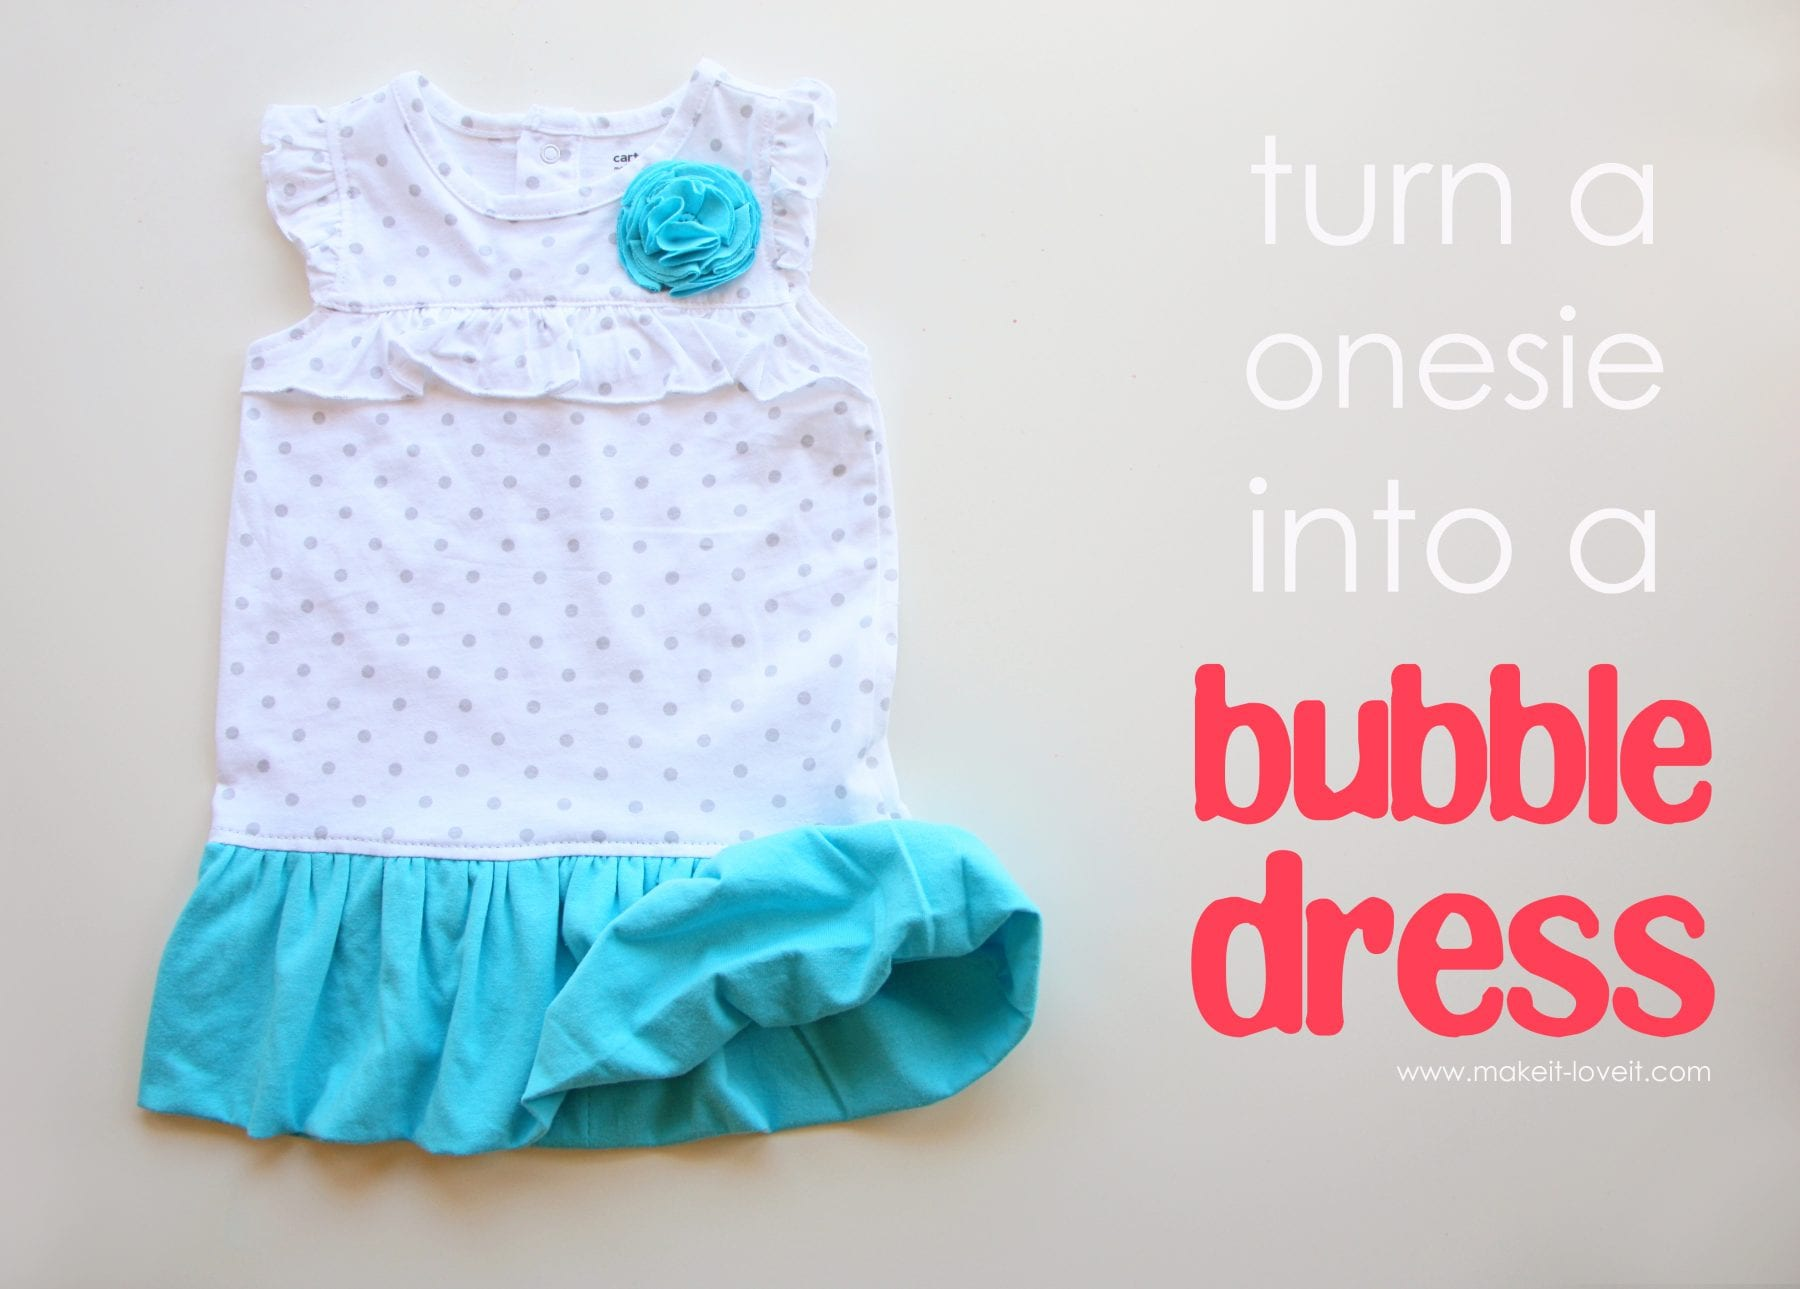 Turn a Onesie into a Bubble Dress